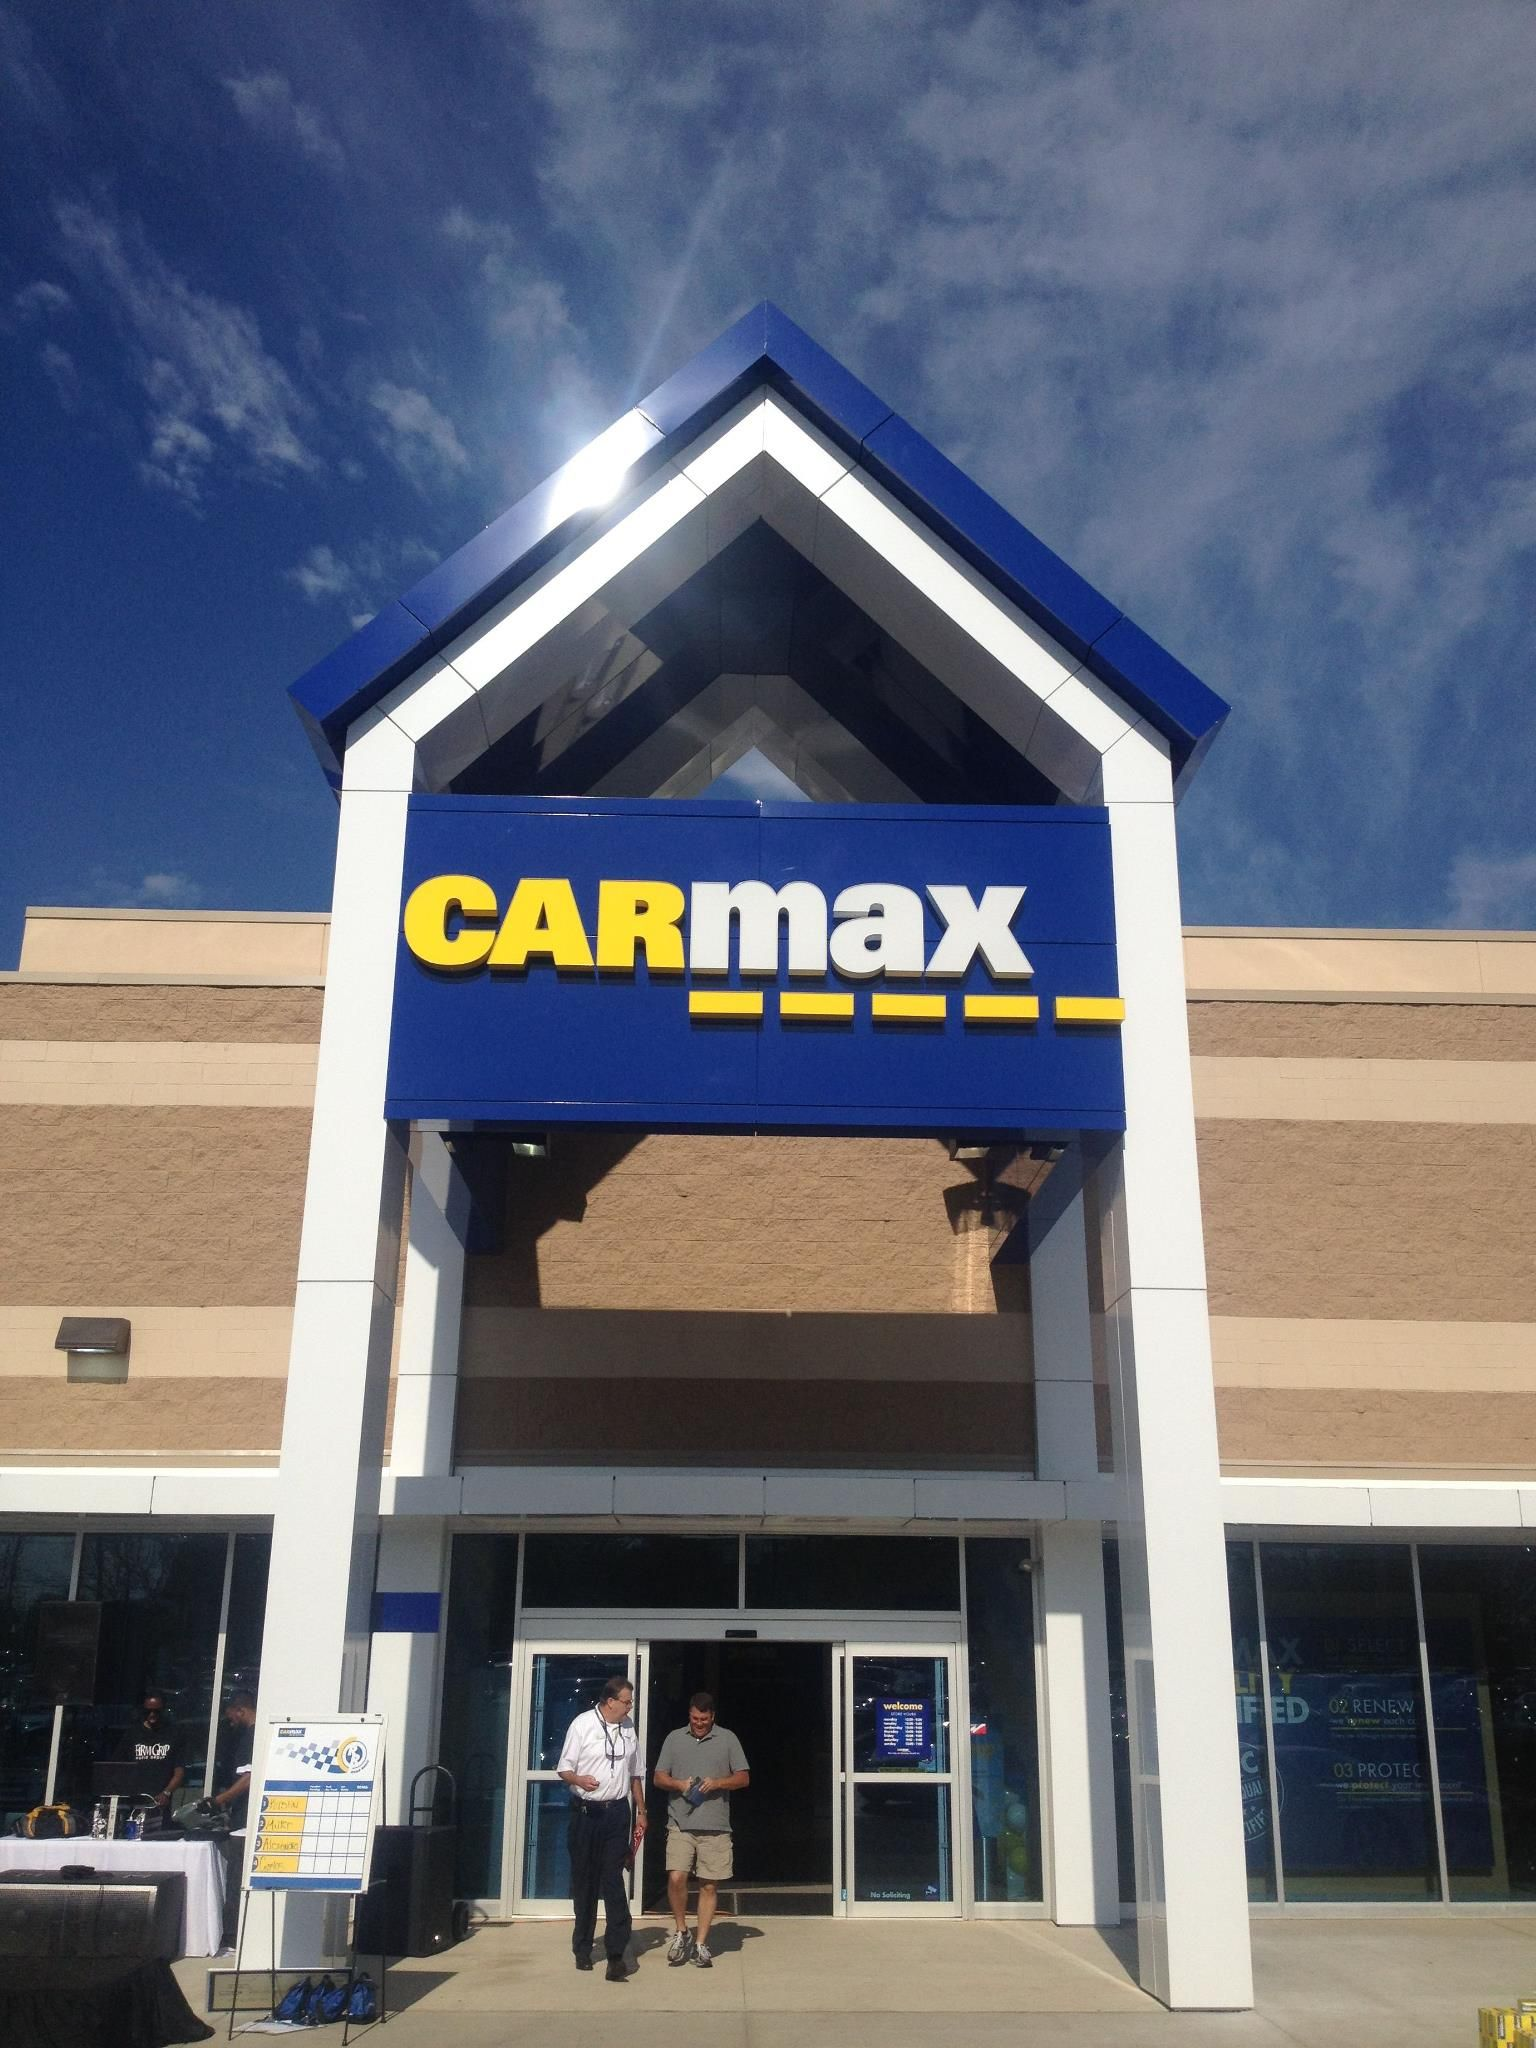 11 Consumer Groups Ask FTC to Crack Down on CarMax